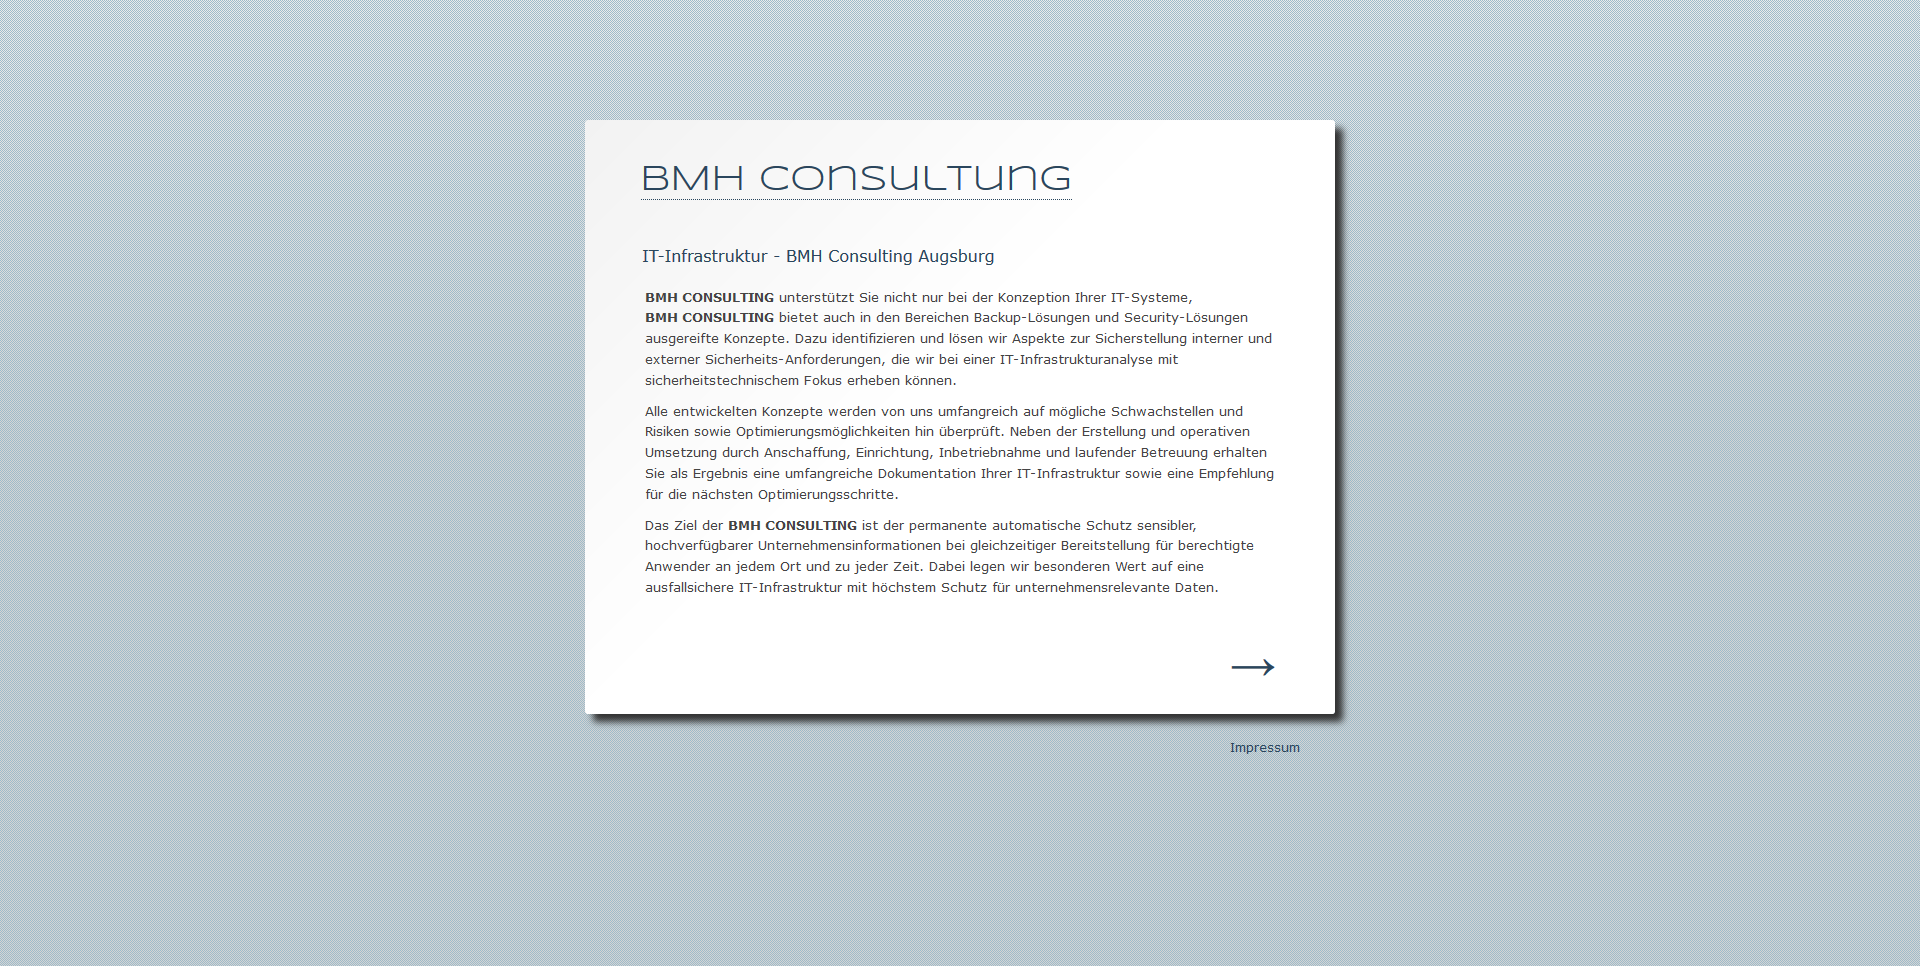 BMH Consulting Heinrich